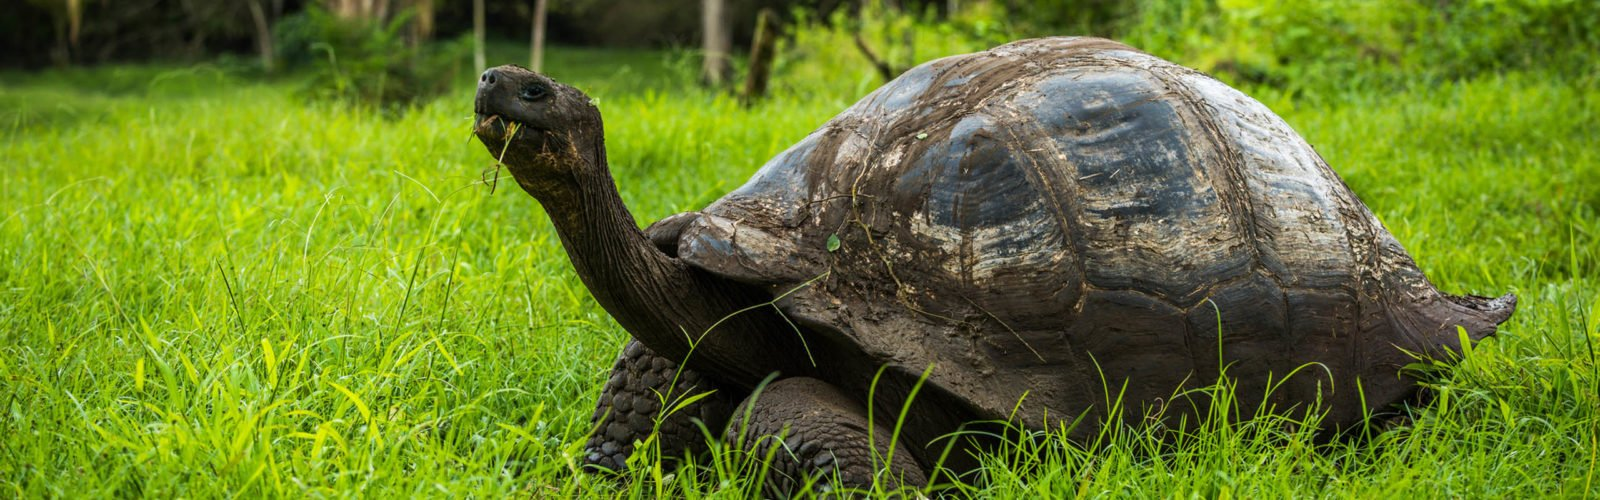 Galapagos giant tortoise eating grass in woods